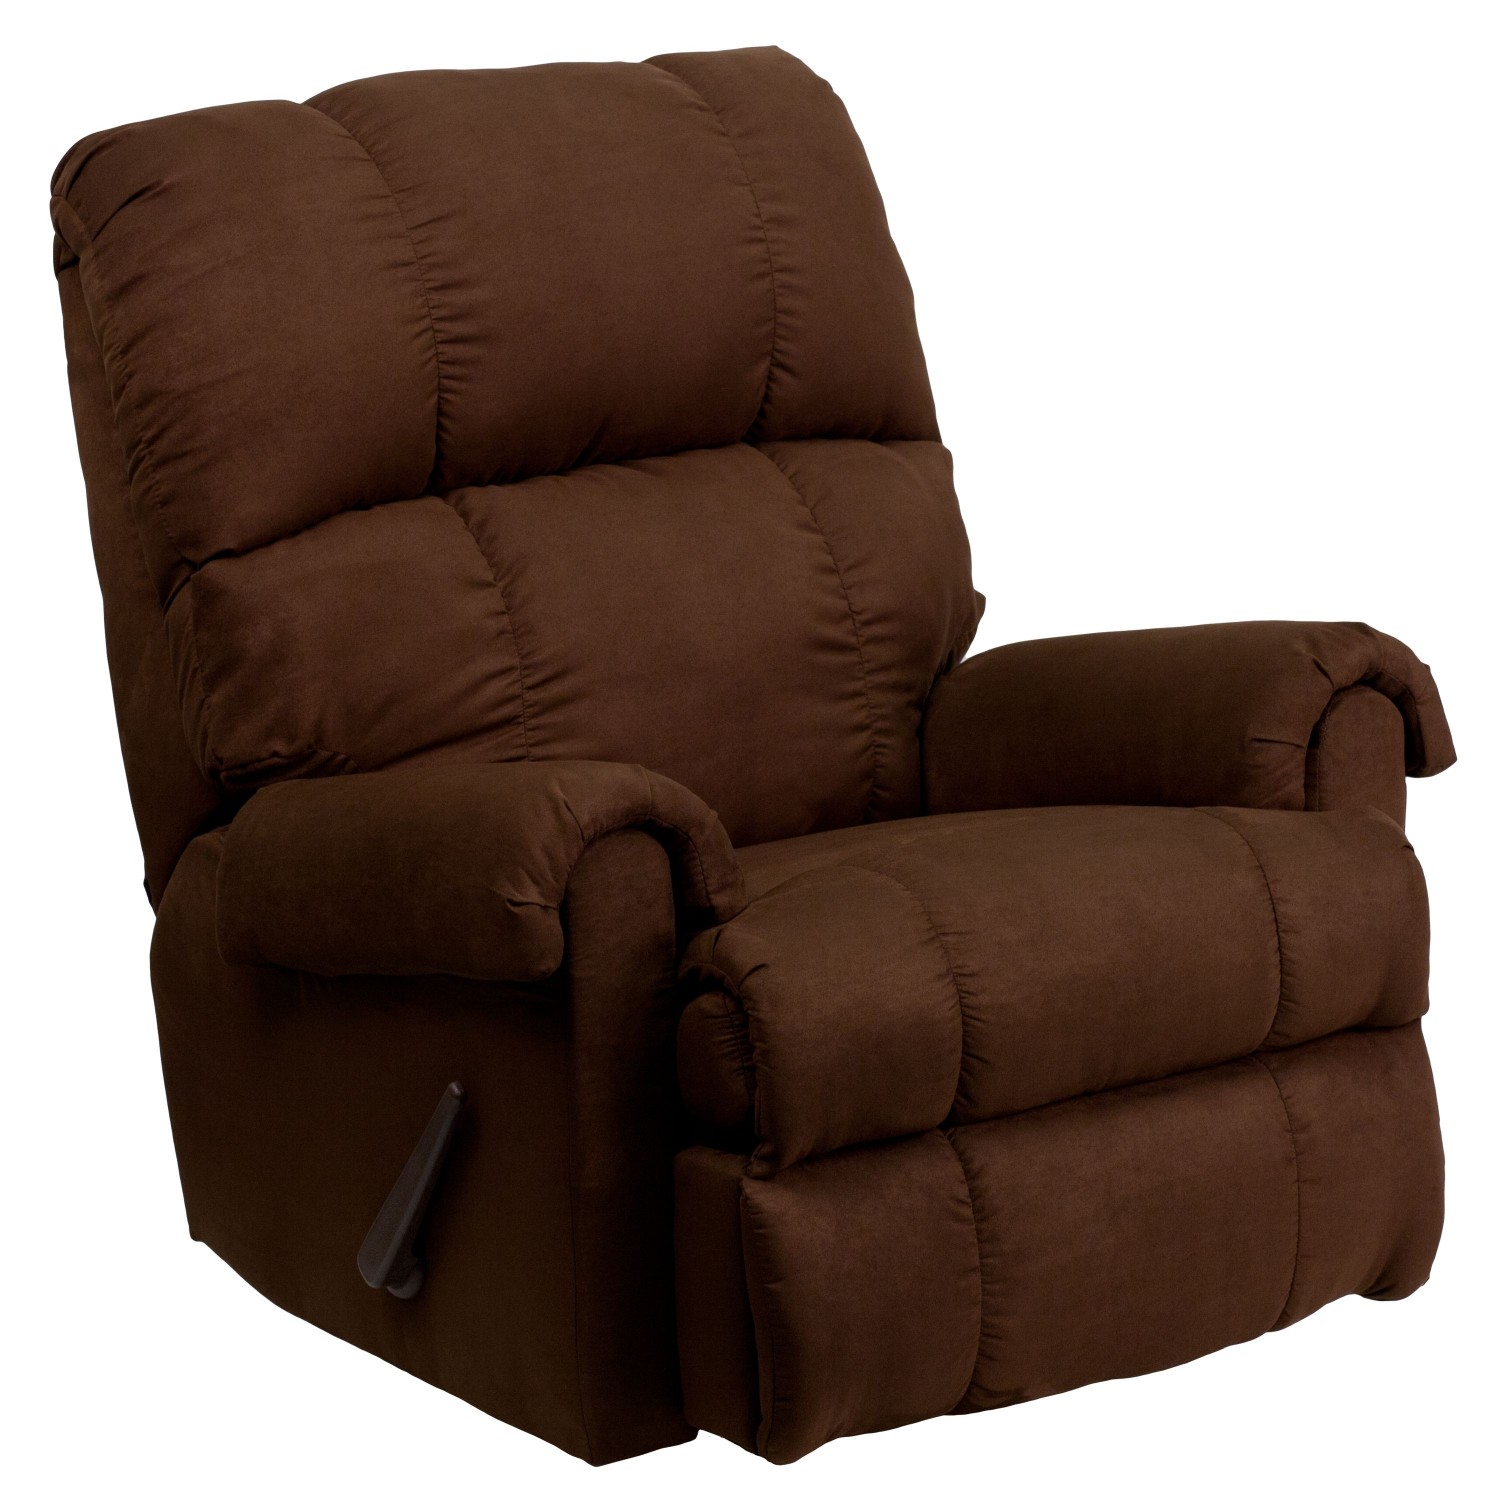 Flash Furniture WM-8700-112-GG Contemporary Flatsuede Chocolate Microfiber Rocker Recliner